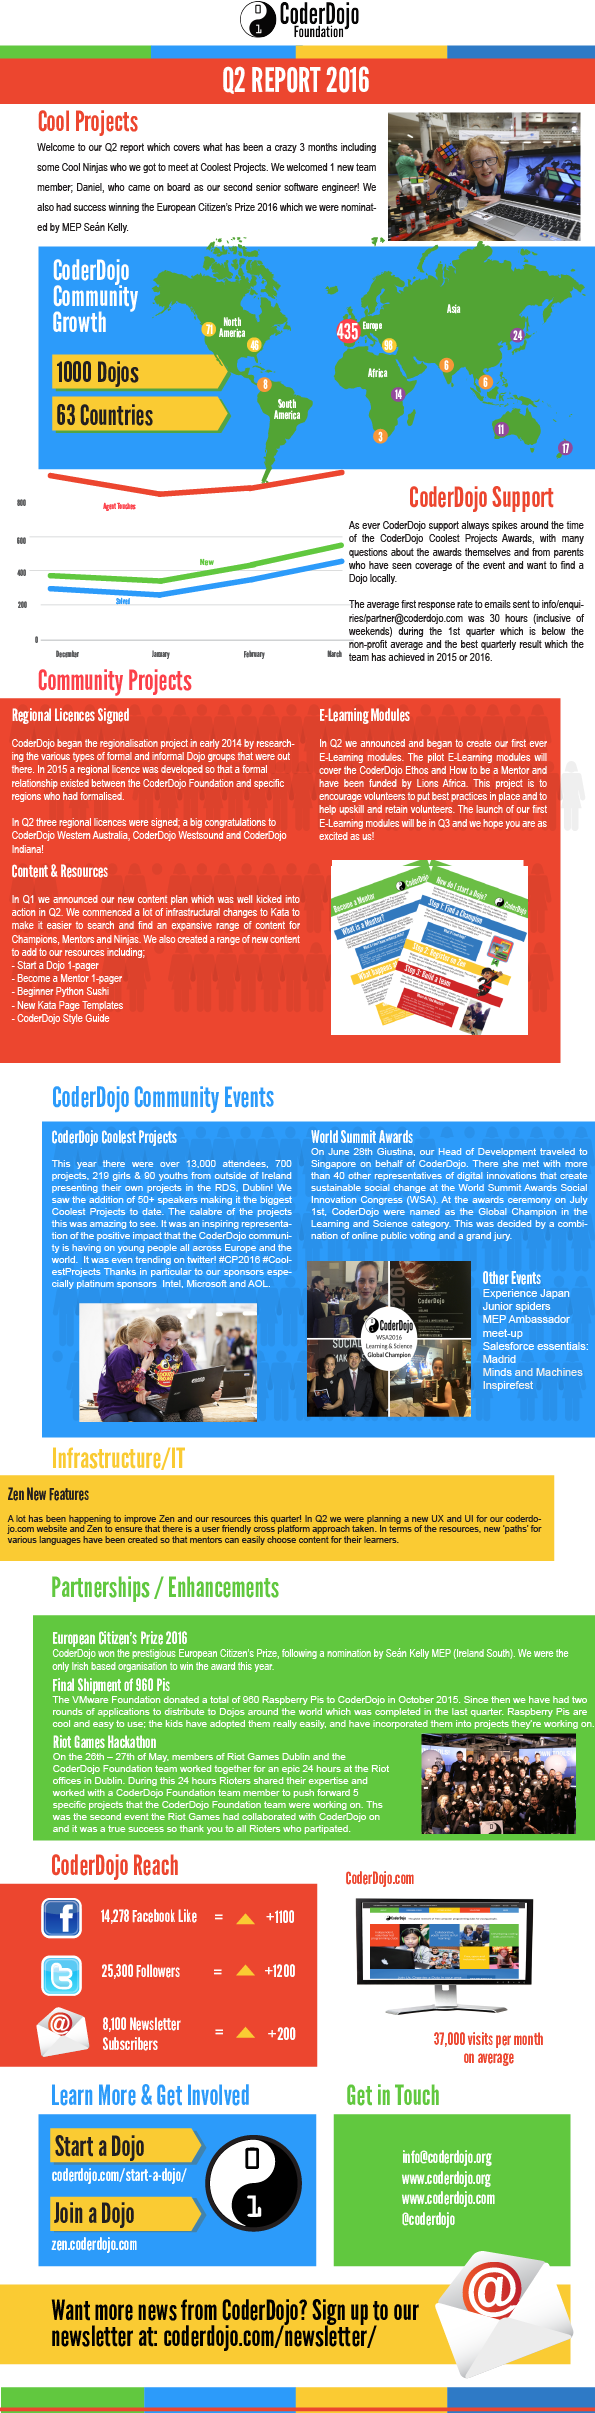 CoderDojo Q2 2016 Report